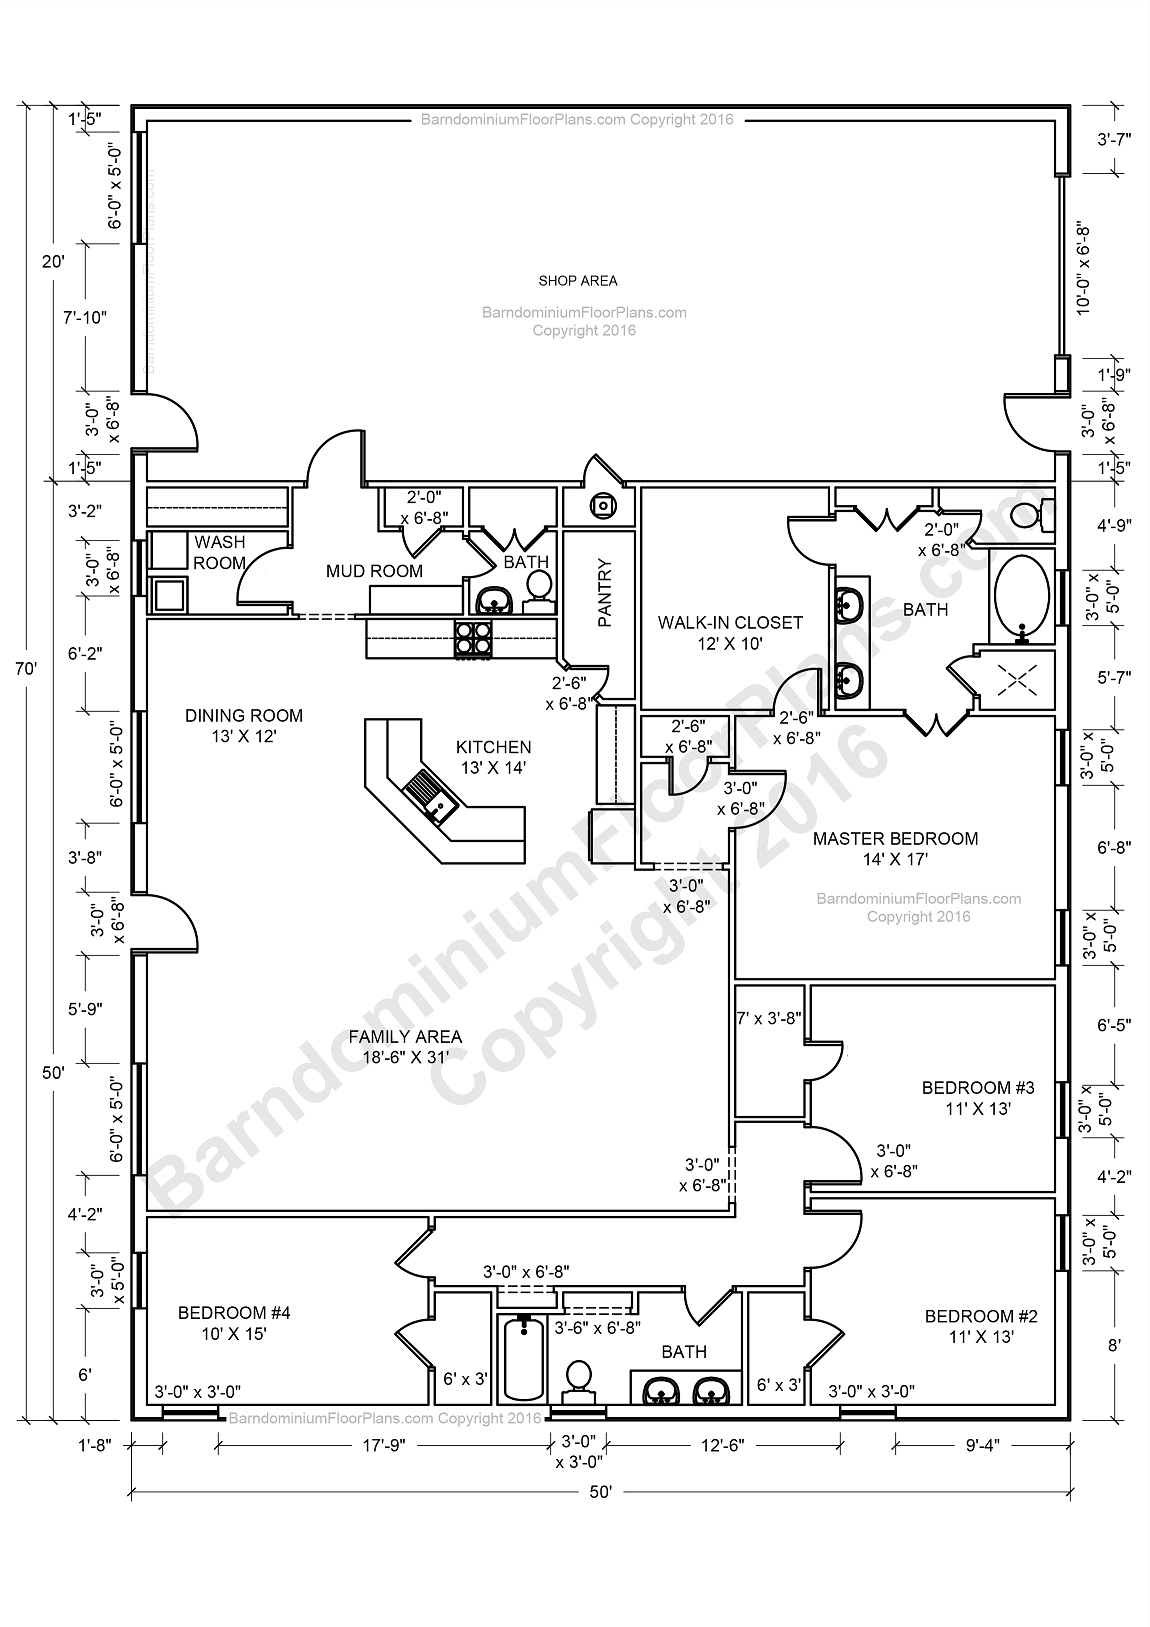 Barndominium floor plans barndominium floor plans 1 800 Barn homes plans